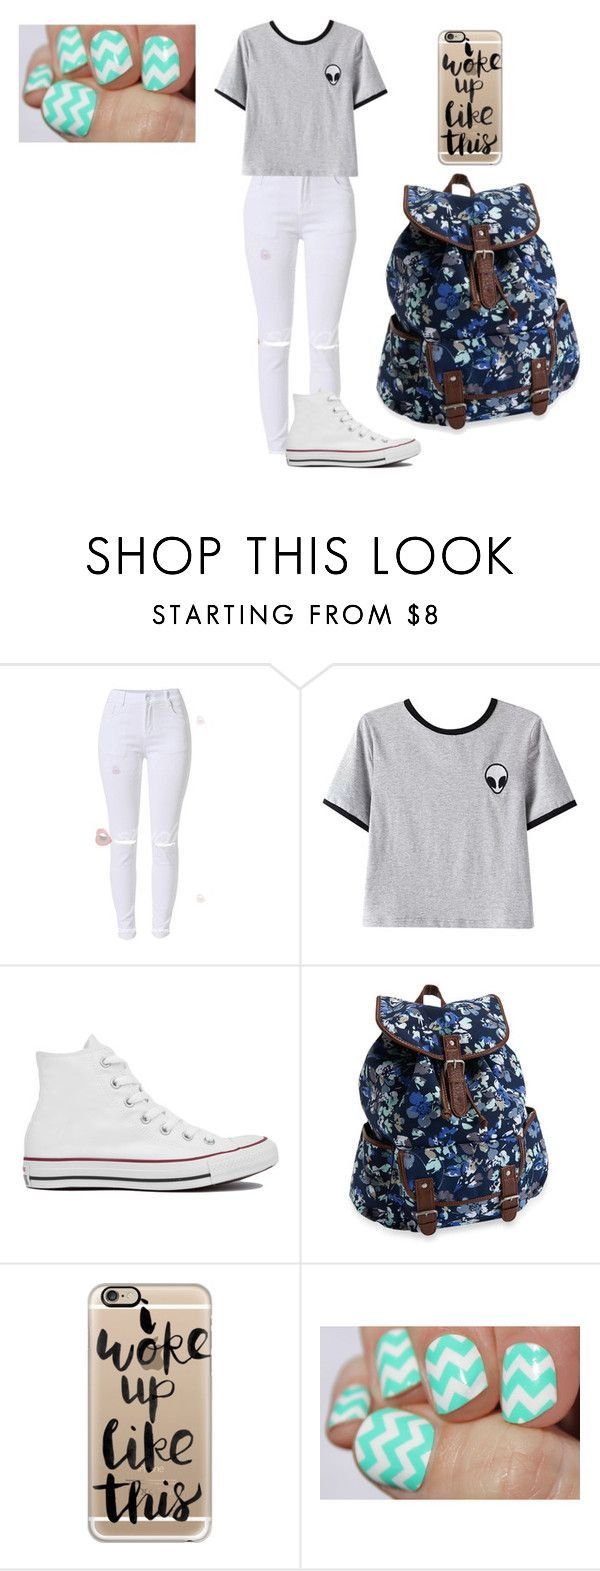 """seventh grade basic."" by phoenixlperkins ❤ liked on Polyvore featuring Chicnova Fashion, Converse, Aéropostale and Casetify"